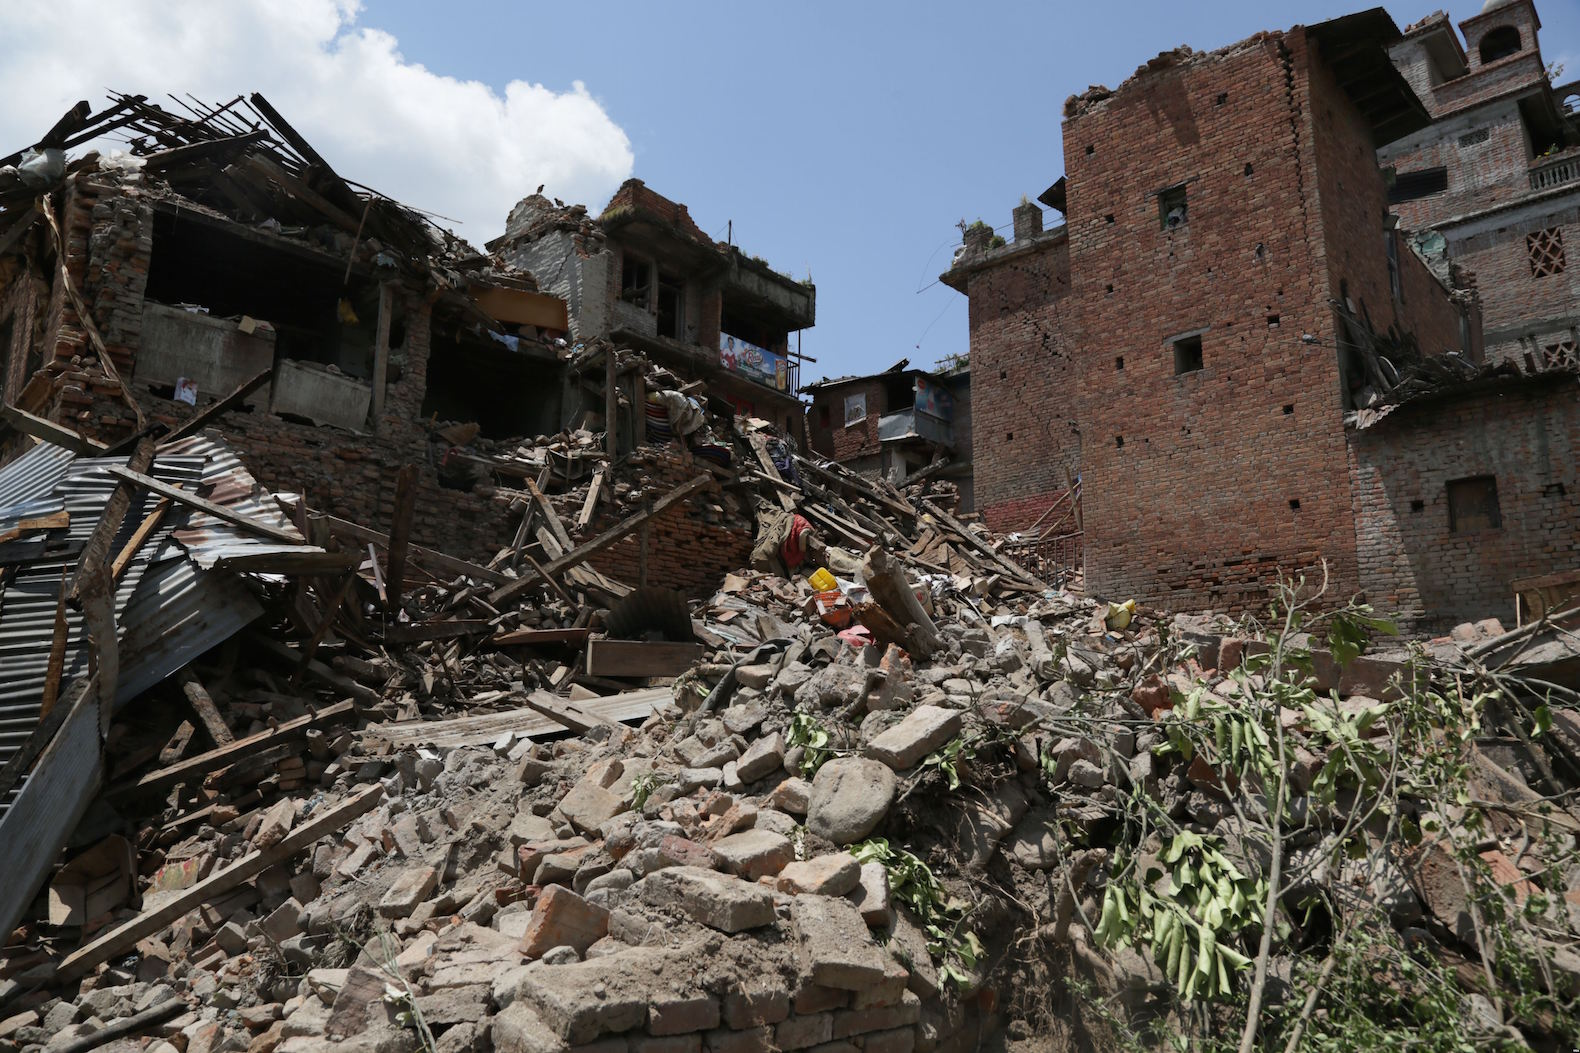 essay on earthquake and its destruction April 2015 nepal earthquake  most were killed in the earthquake or had to deal with its aftereffects  the destruction is concentrated in the kathmandu valley.